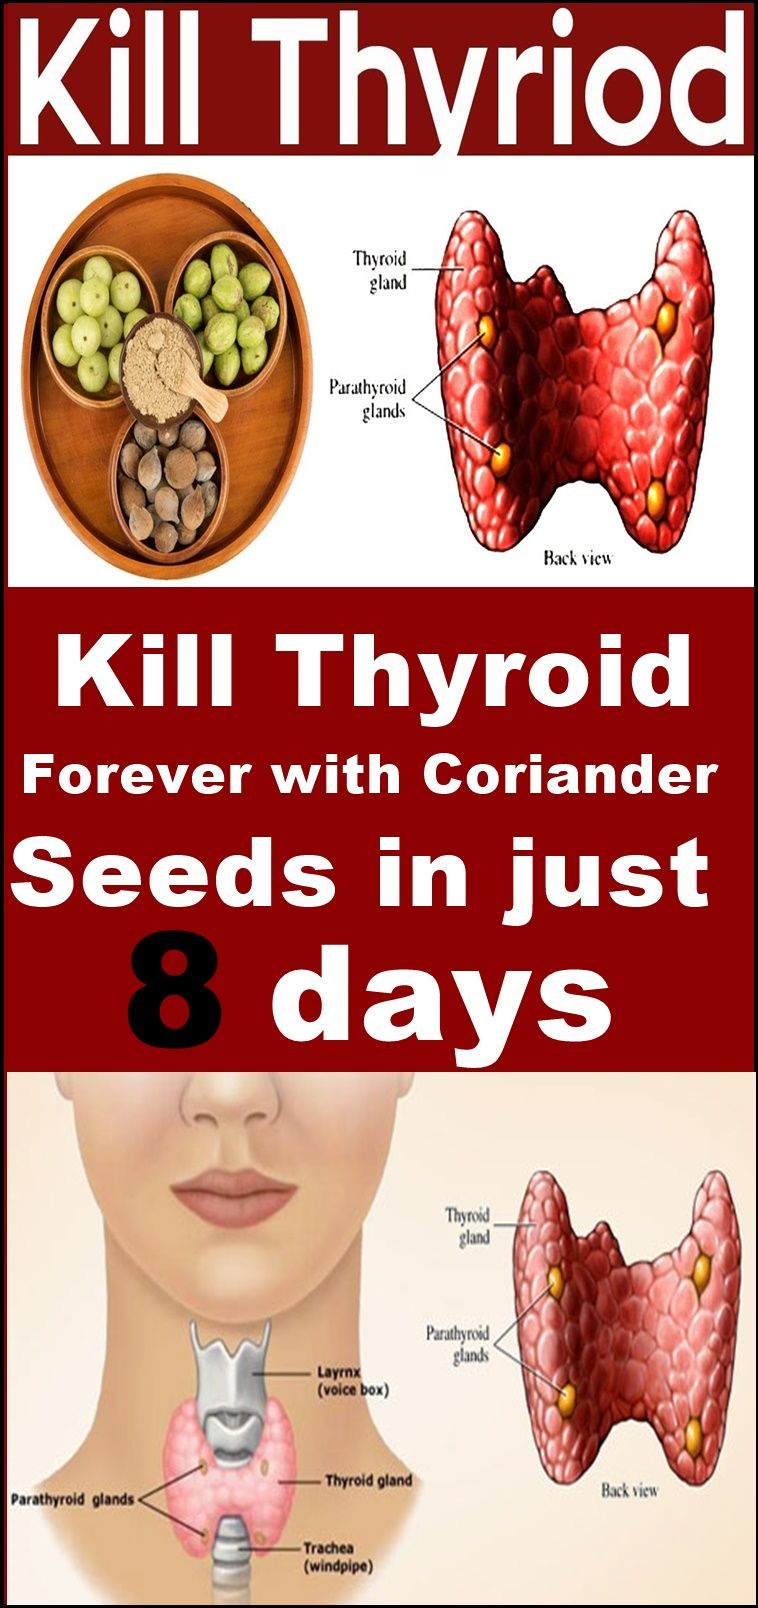 kill thyroid forever with coriander seeds in just 8 days